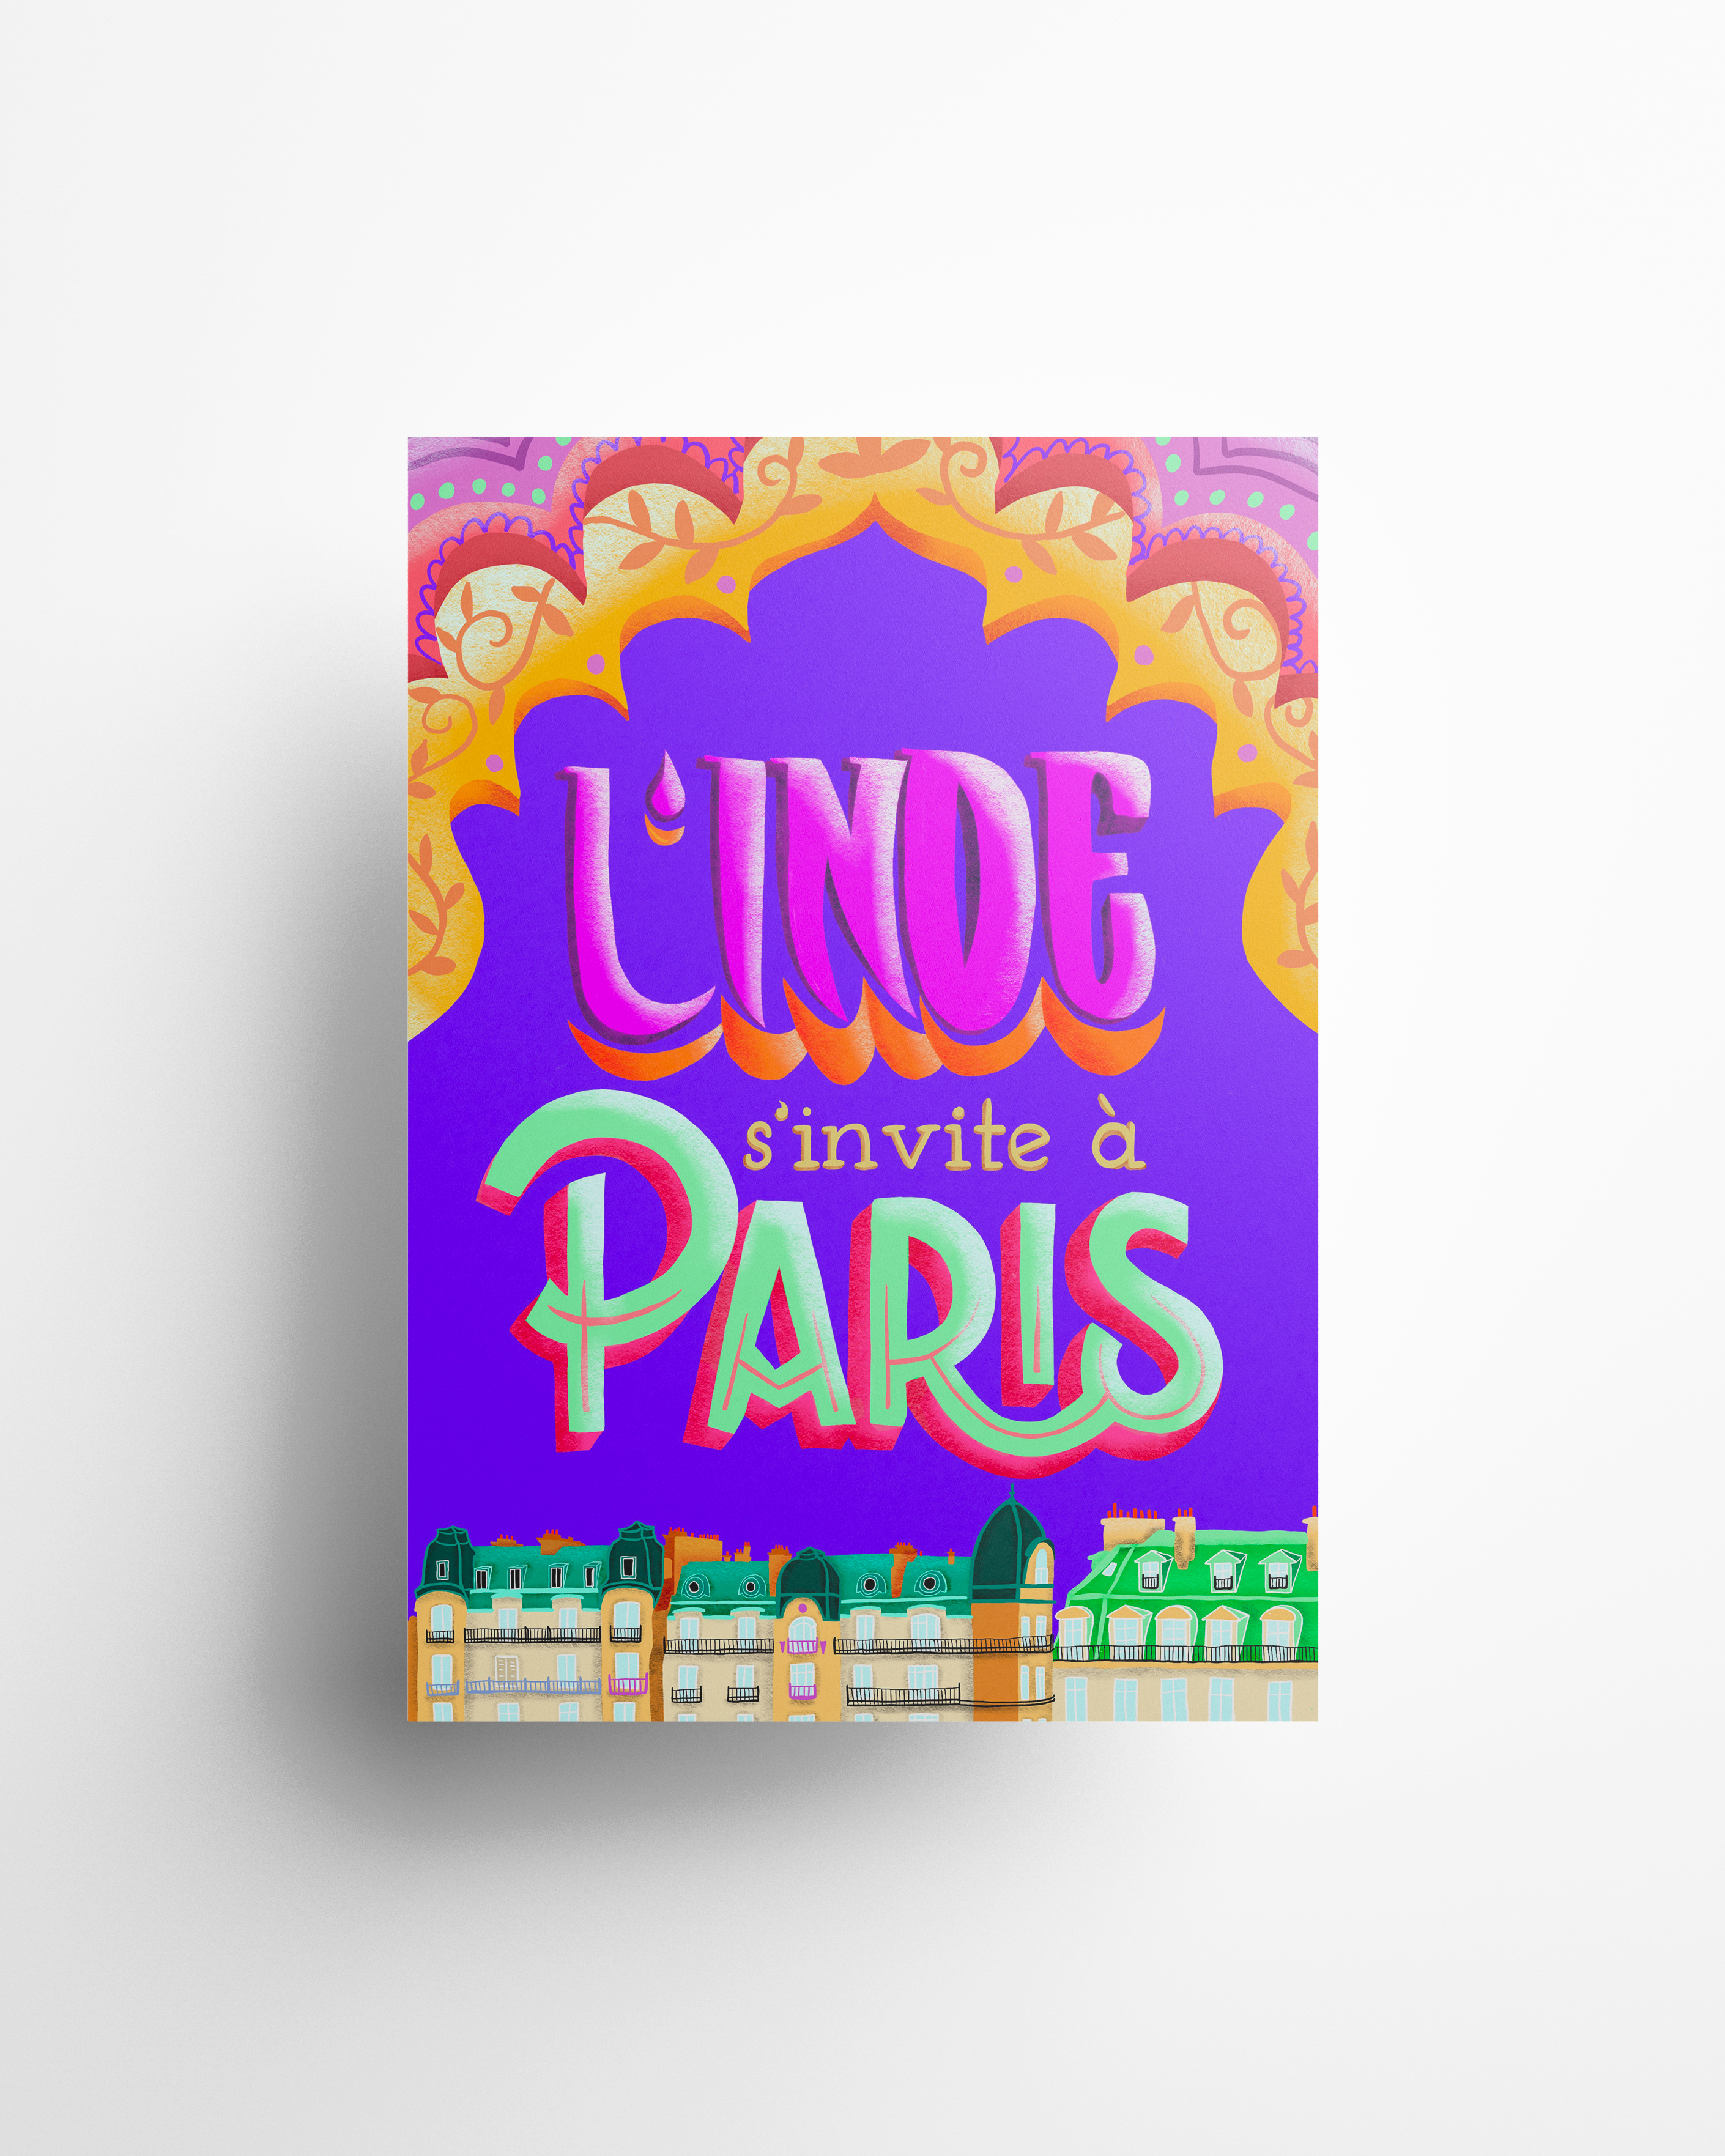 L'Inde s'invite à Paris